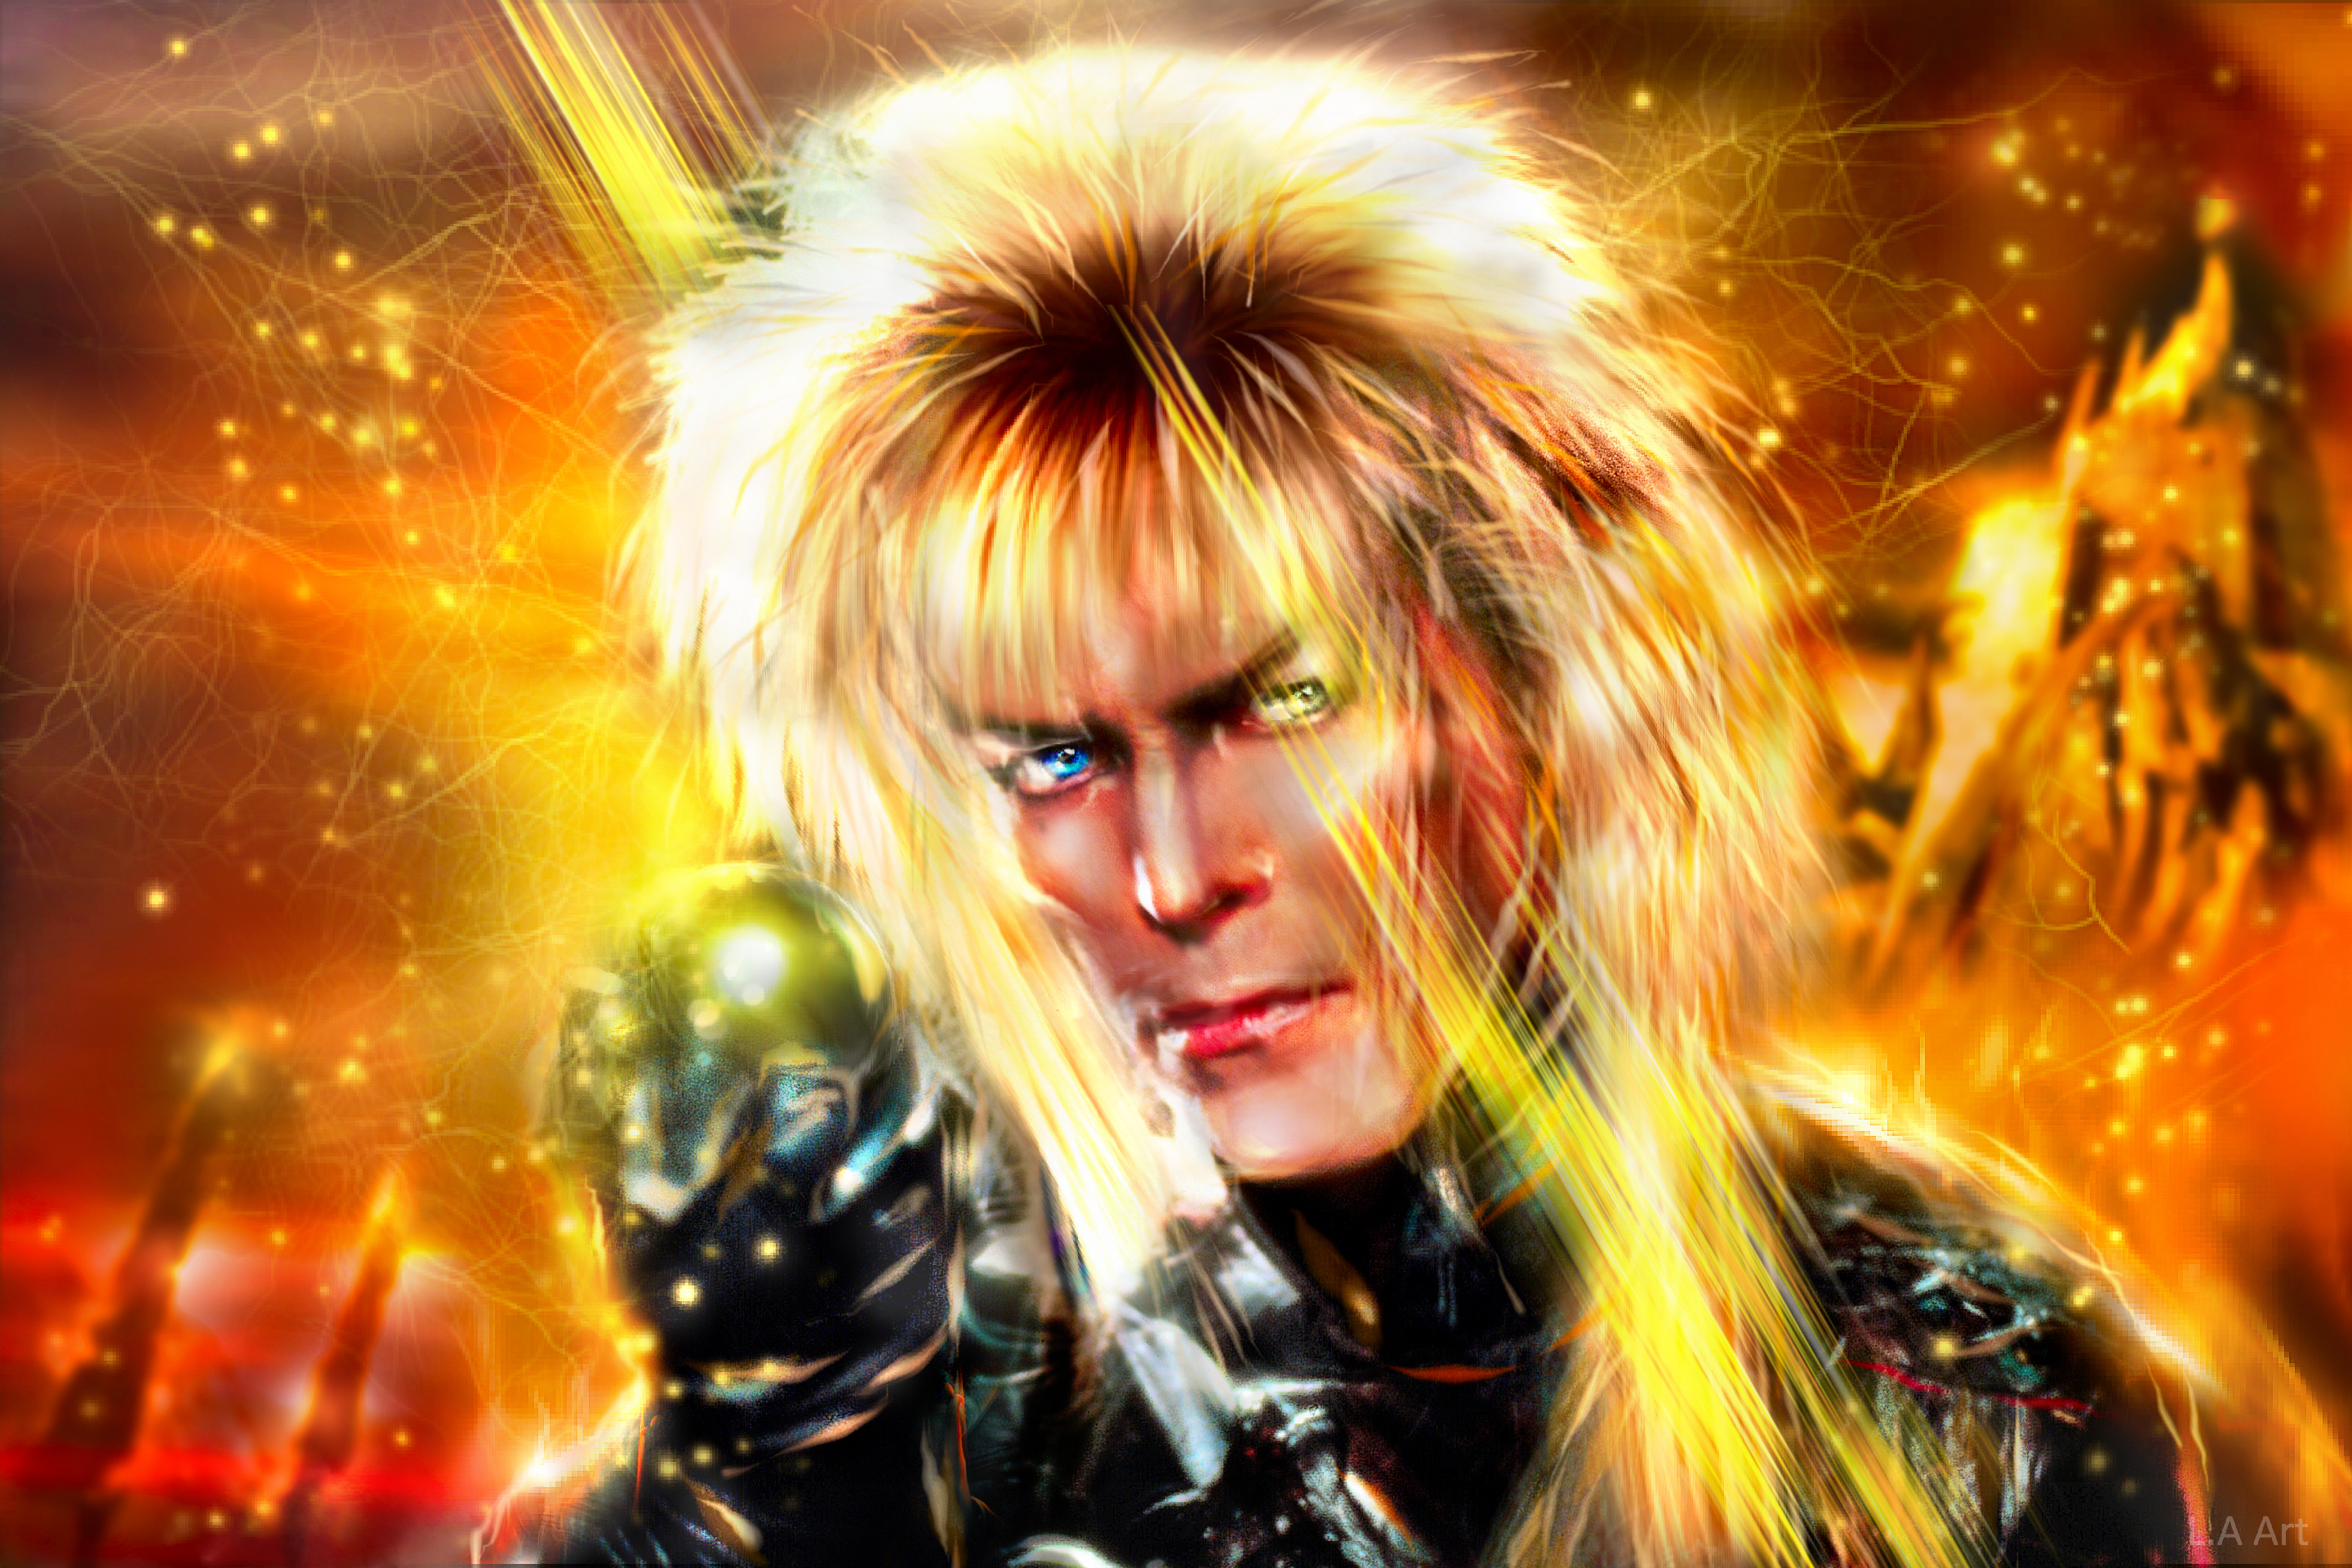 DAVID BOWIE -GOBLIN KING Computer Wallpapers, Desktop ... Labyrinth Movie Wallpaper